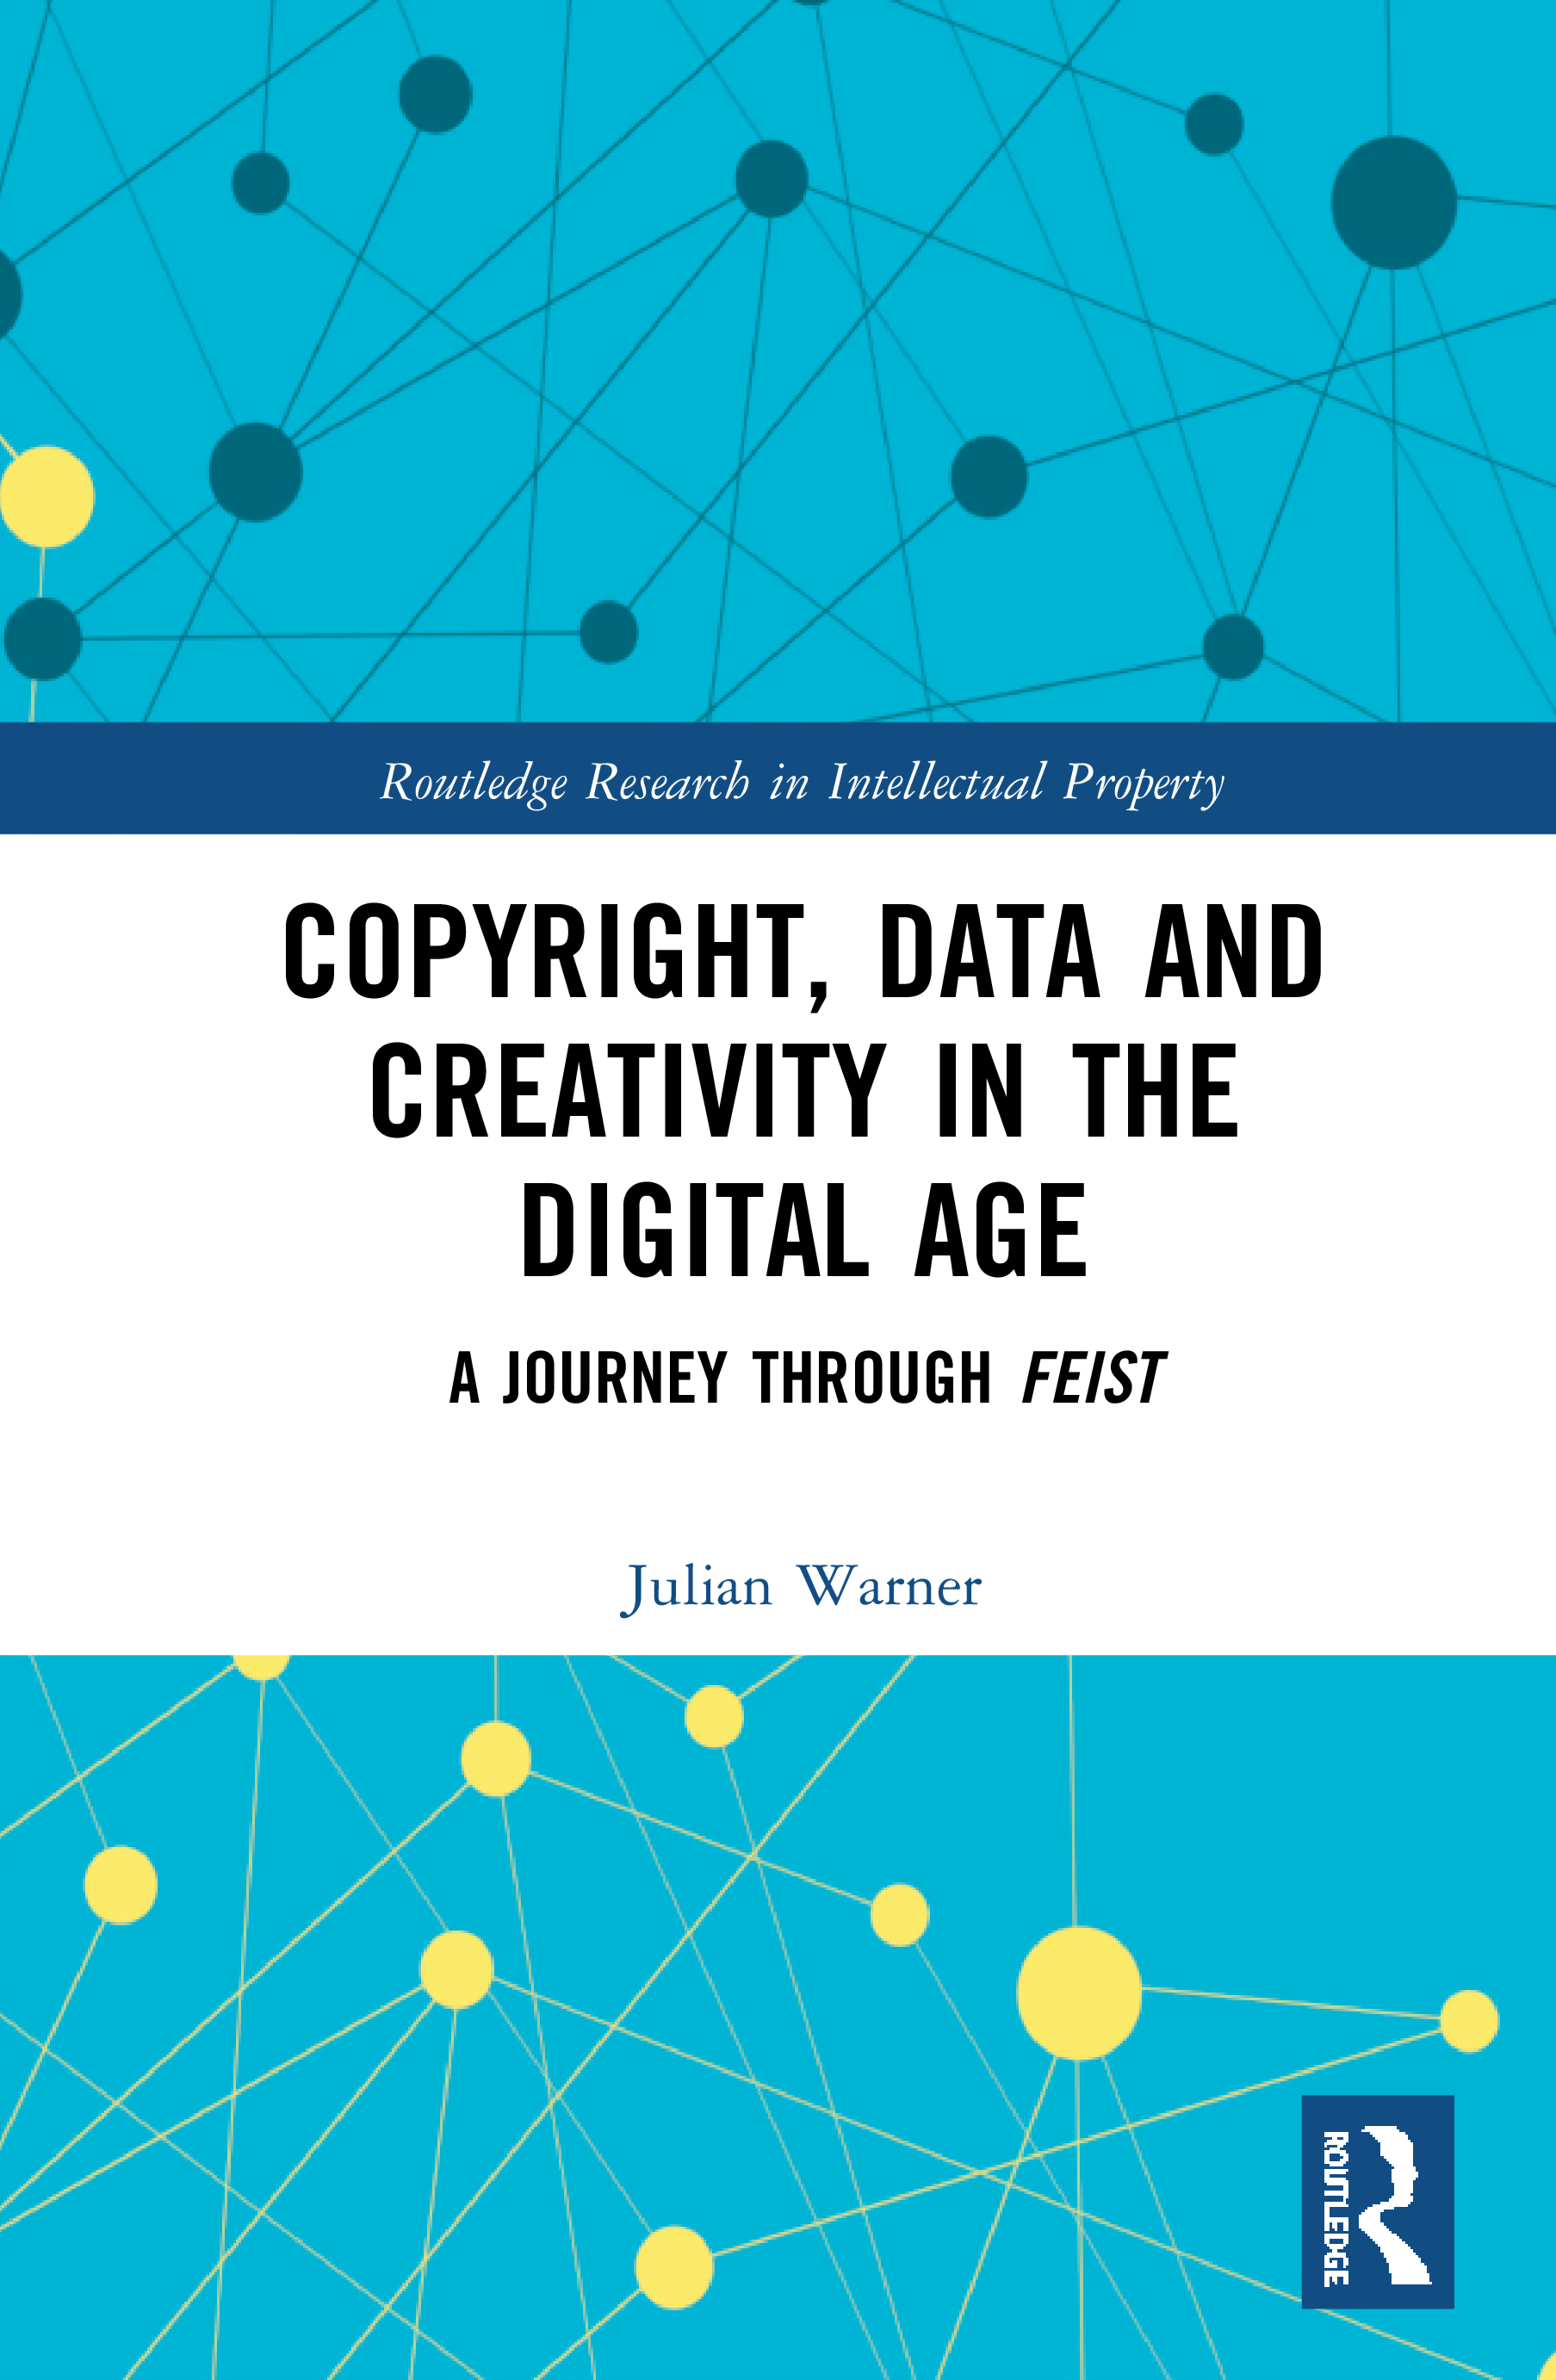 Copyright, Data and Creativity in the Digital Age: A Journey through Feist book cover